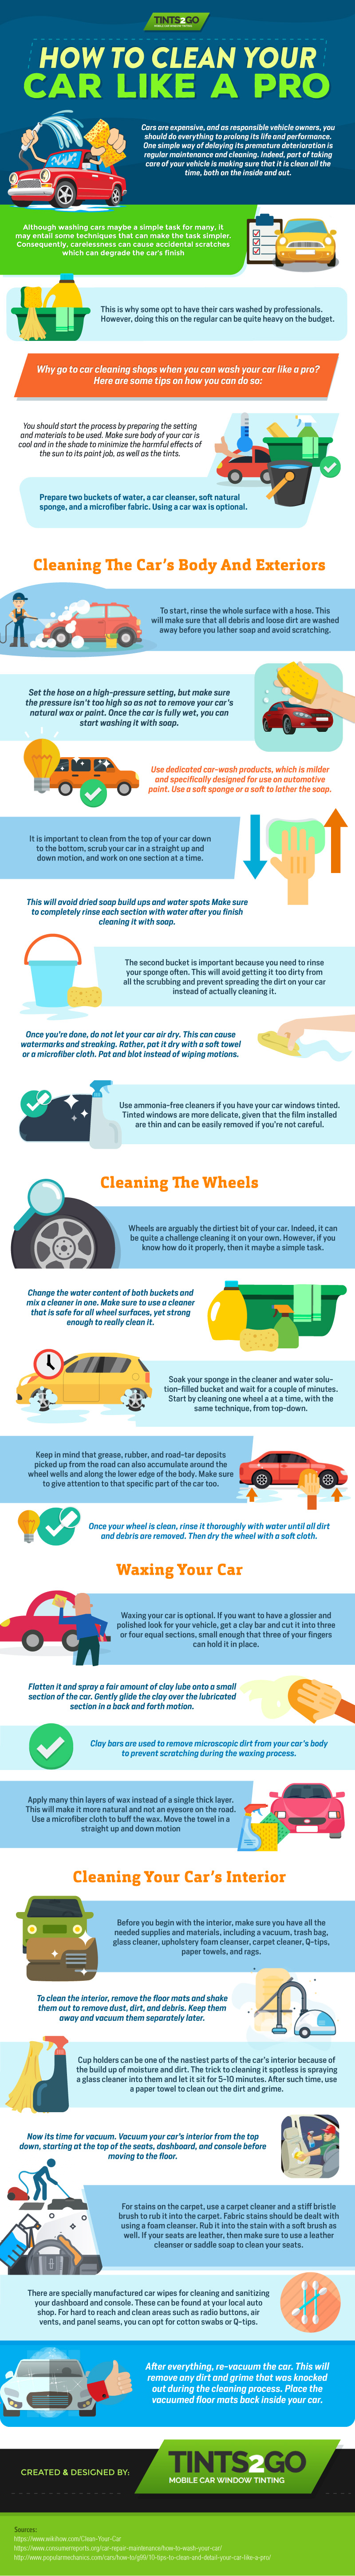 How to Clean Your Car Like a Pro [Infographic]